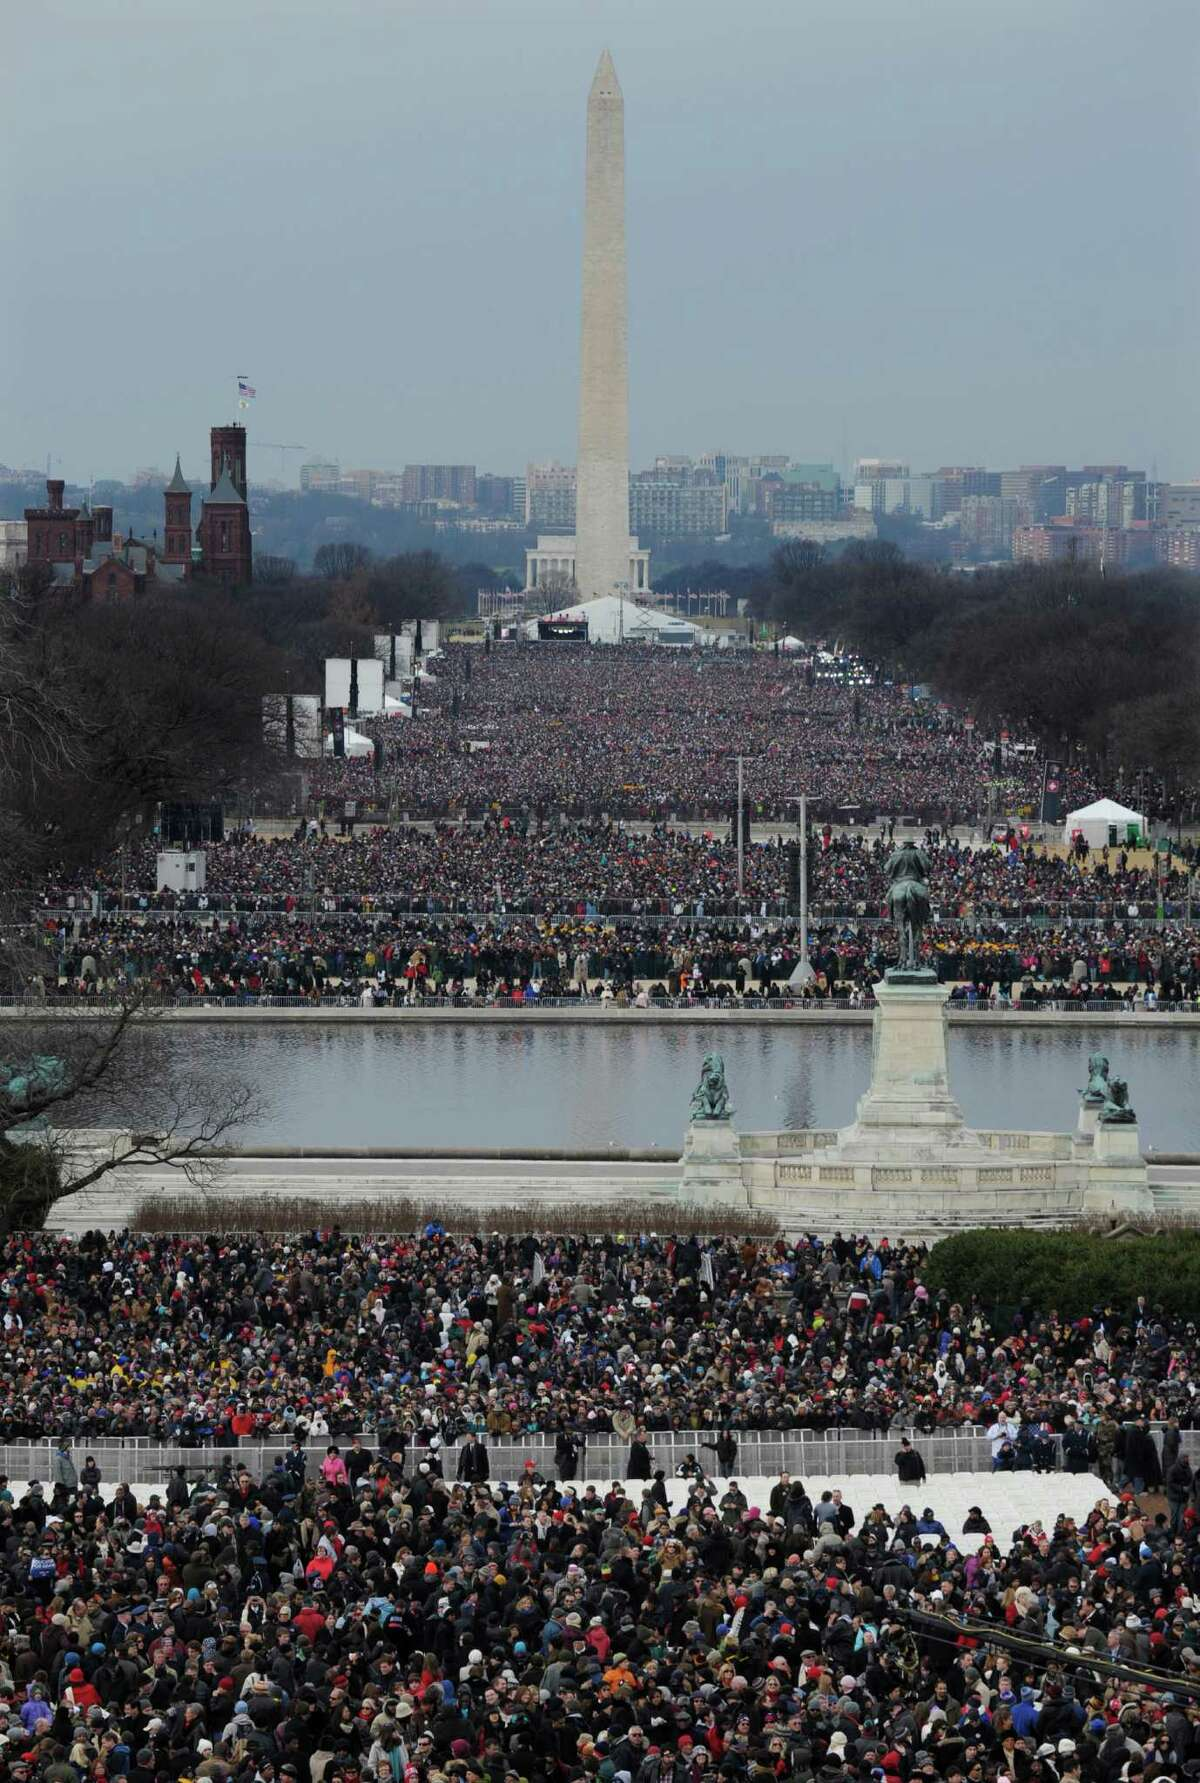 Crowds congregate in The National Mall for the ceremonial swearing-in for President Barack Obama at the U.S. Capitol during the 57th Presidential Inauguration in Washington, Monday, Jan. 21, 2013.